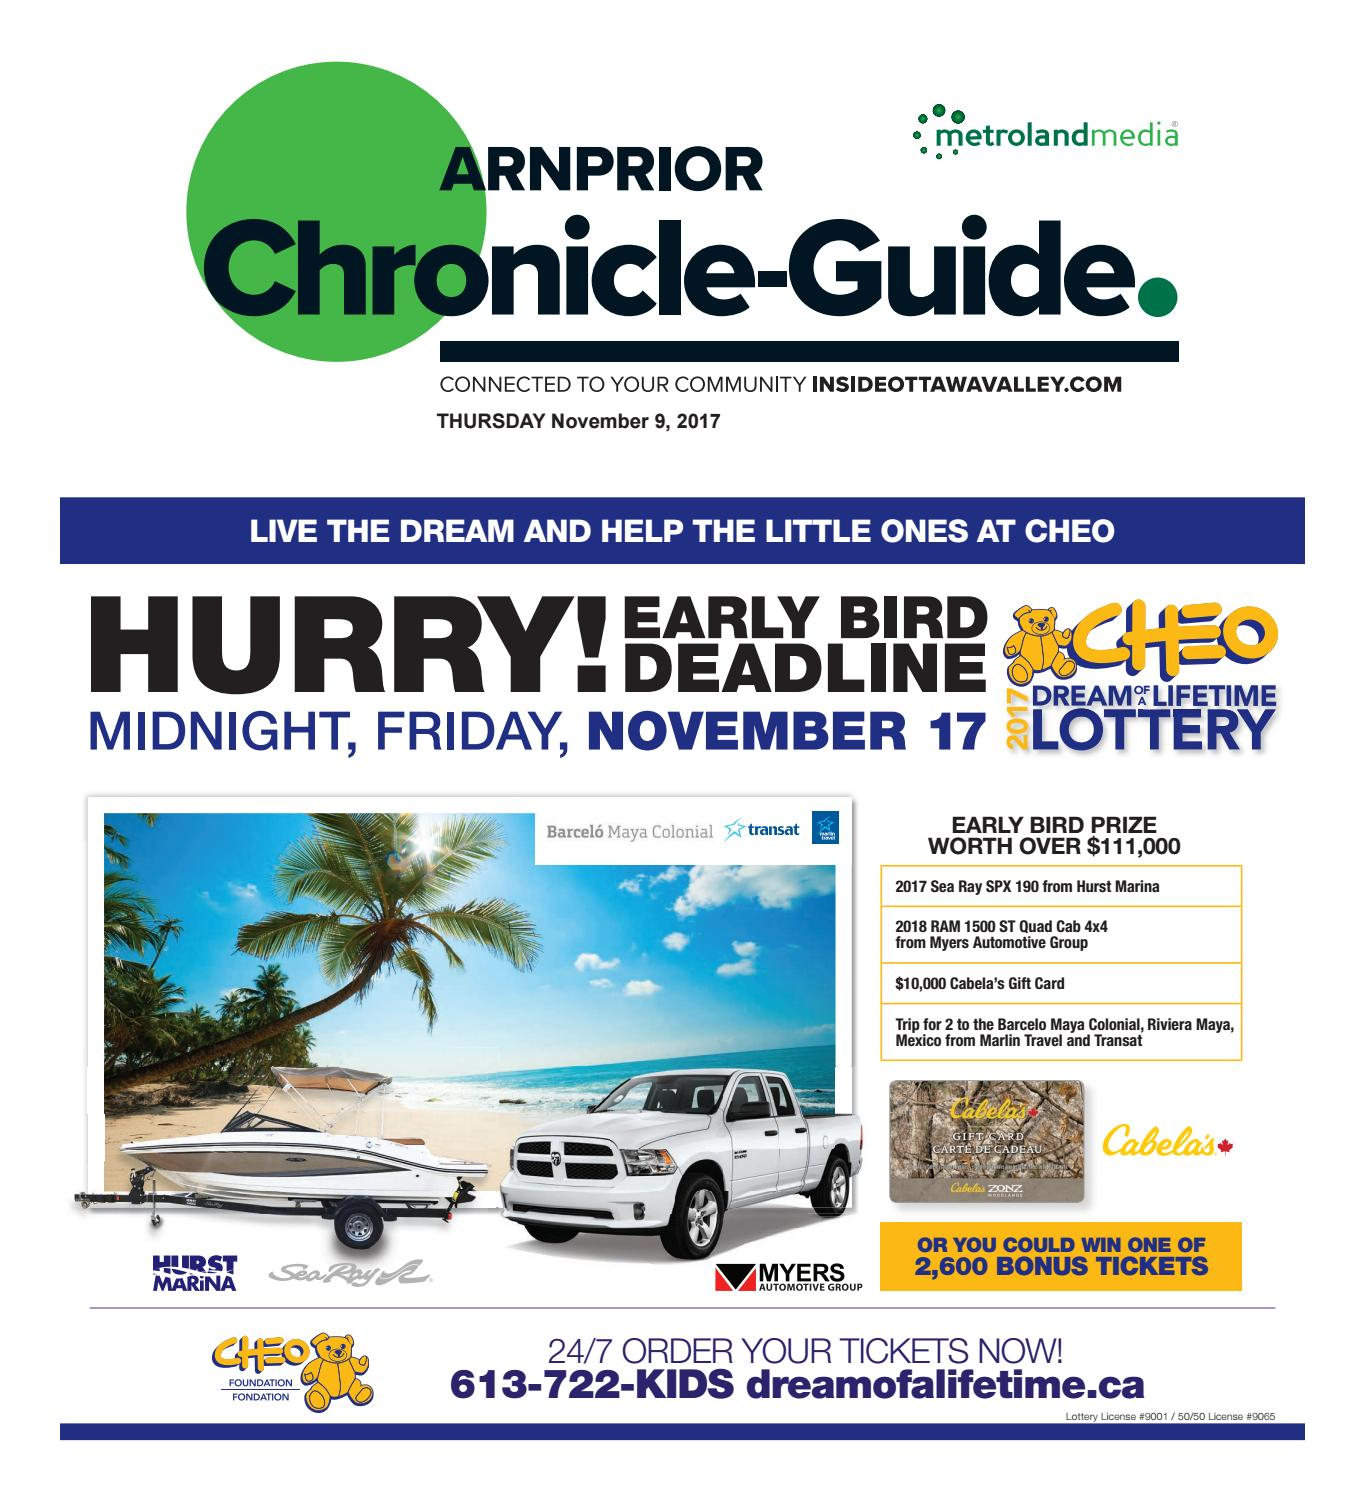 8b37469ab4a Arnprior110917 by Metroland East - Arnprior Chronicle-Guide - issuu